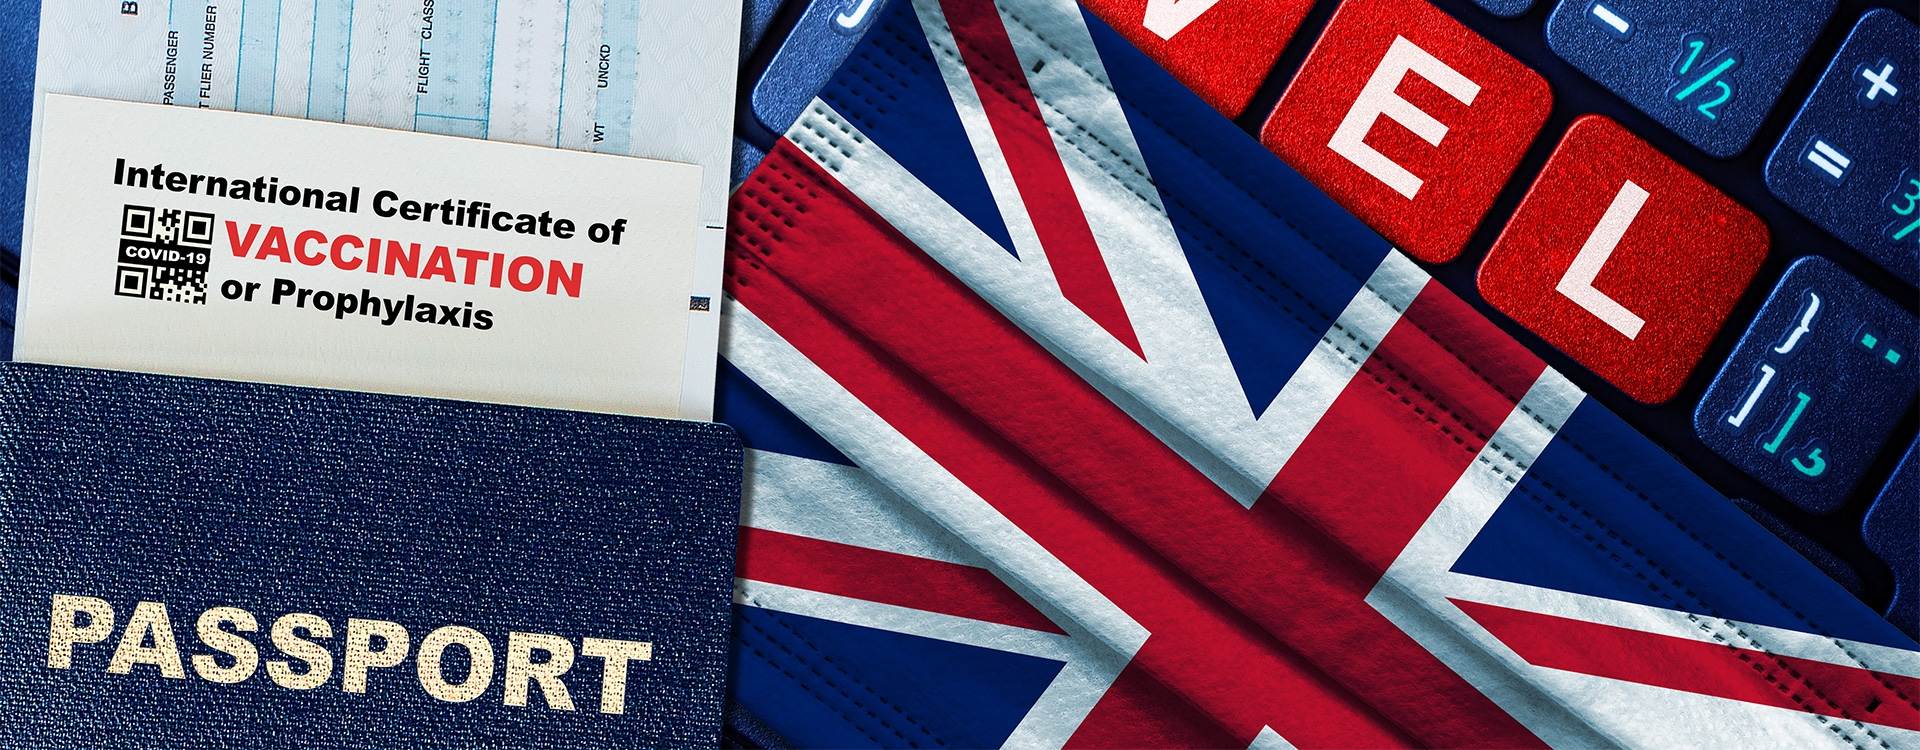 Vaccine passports for the US, UK and EU – yay or nay? (B2-C1)